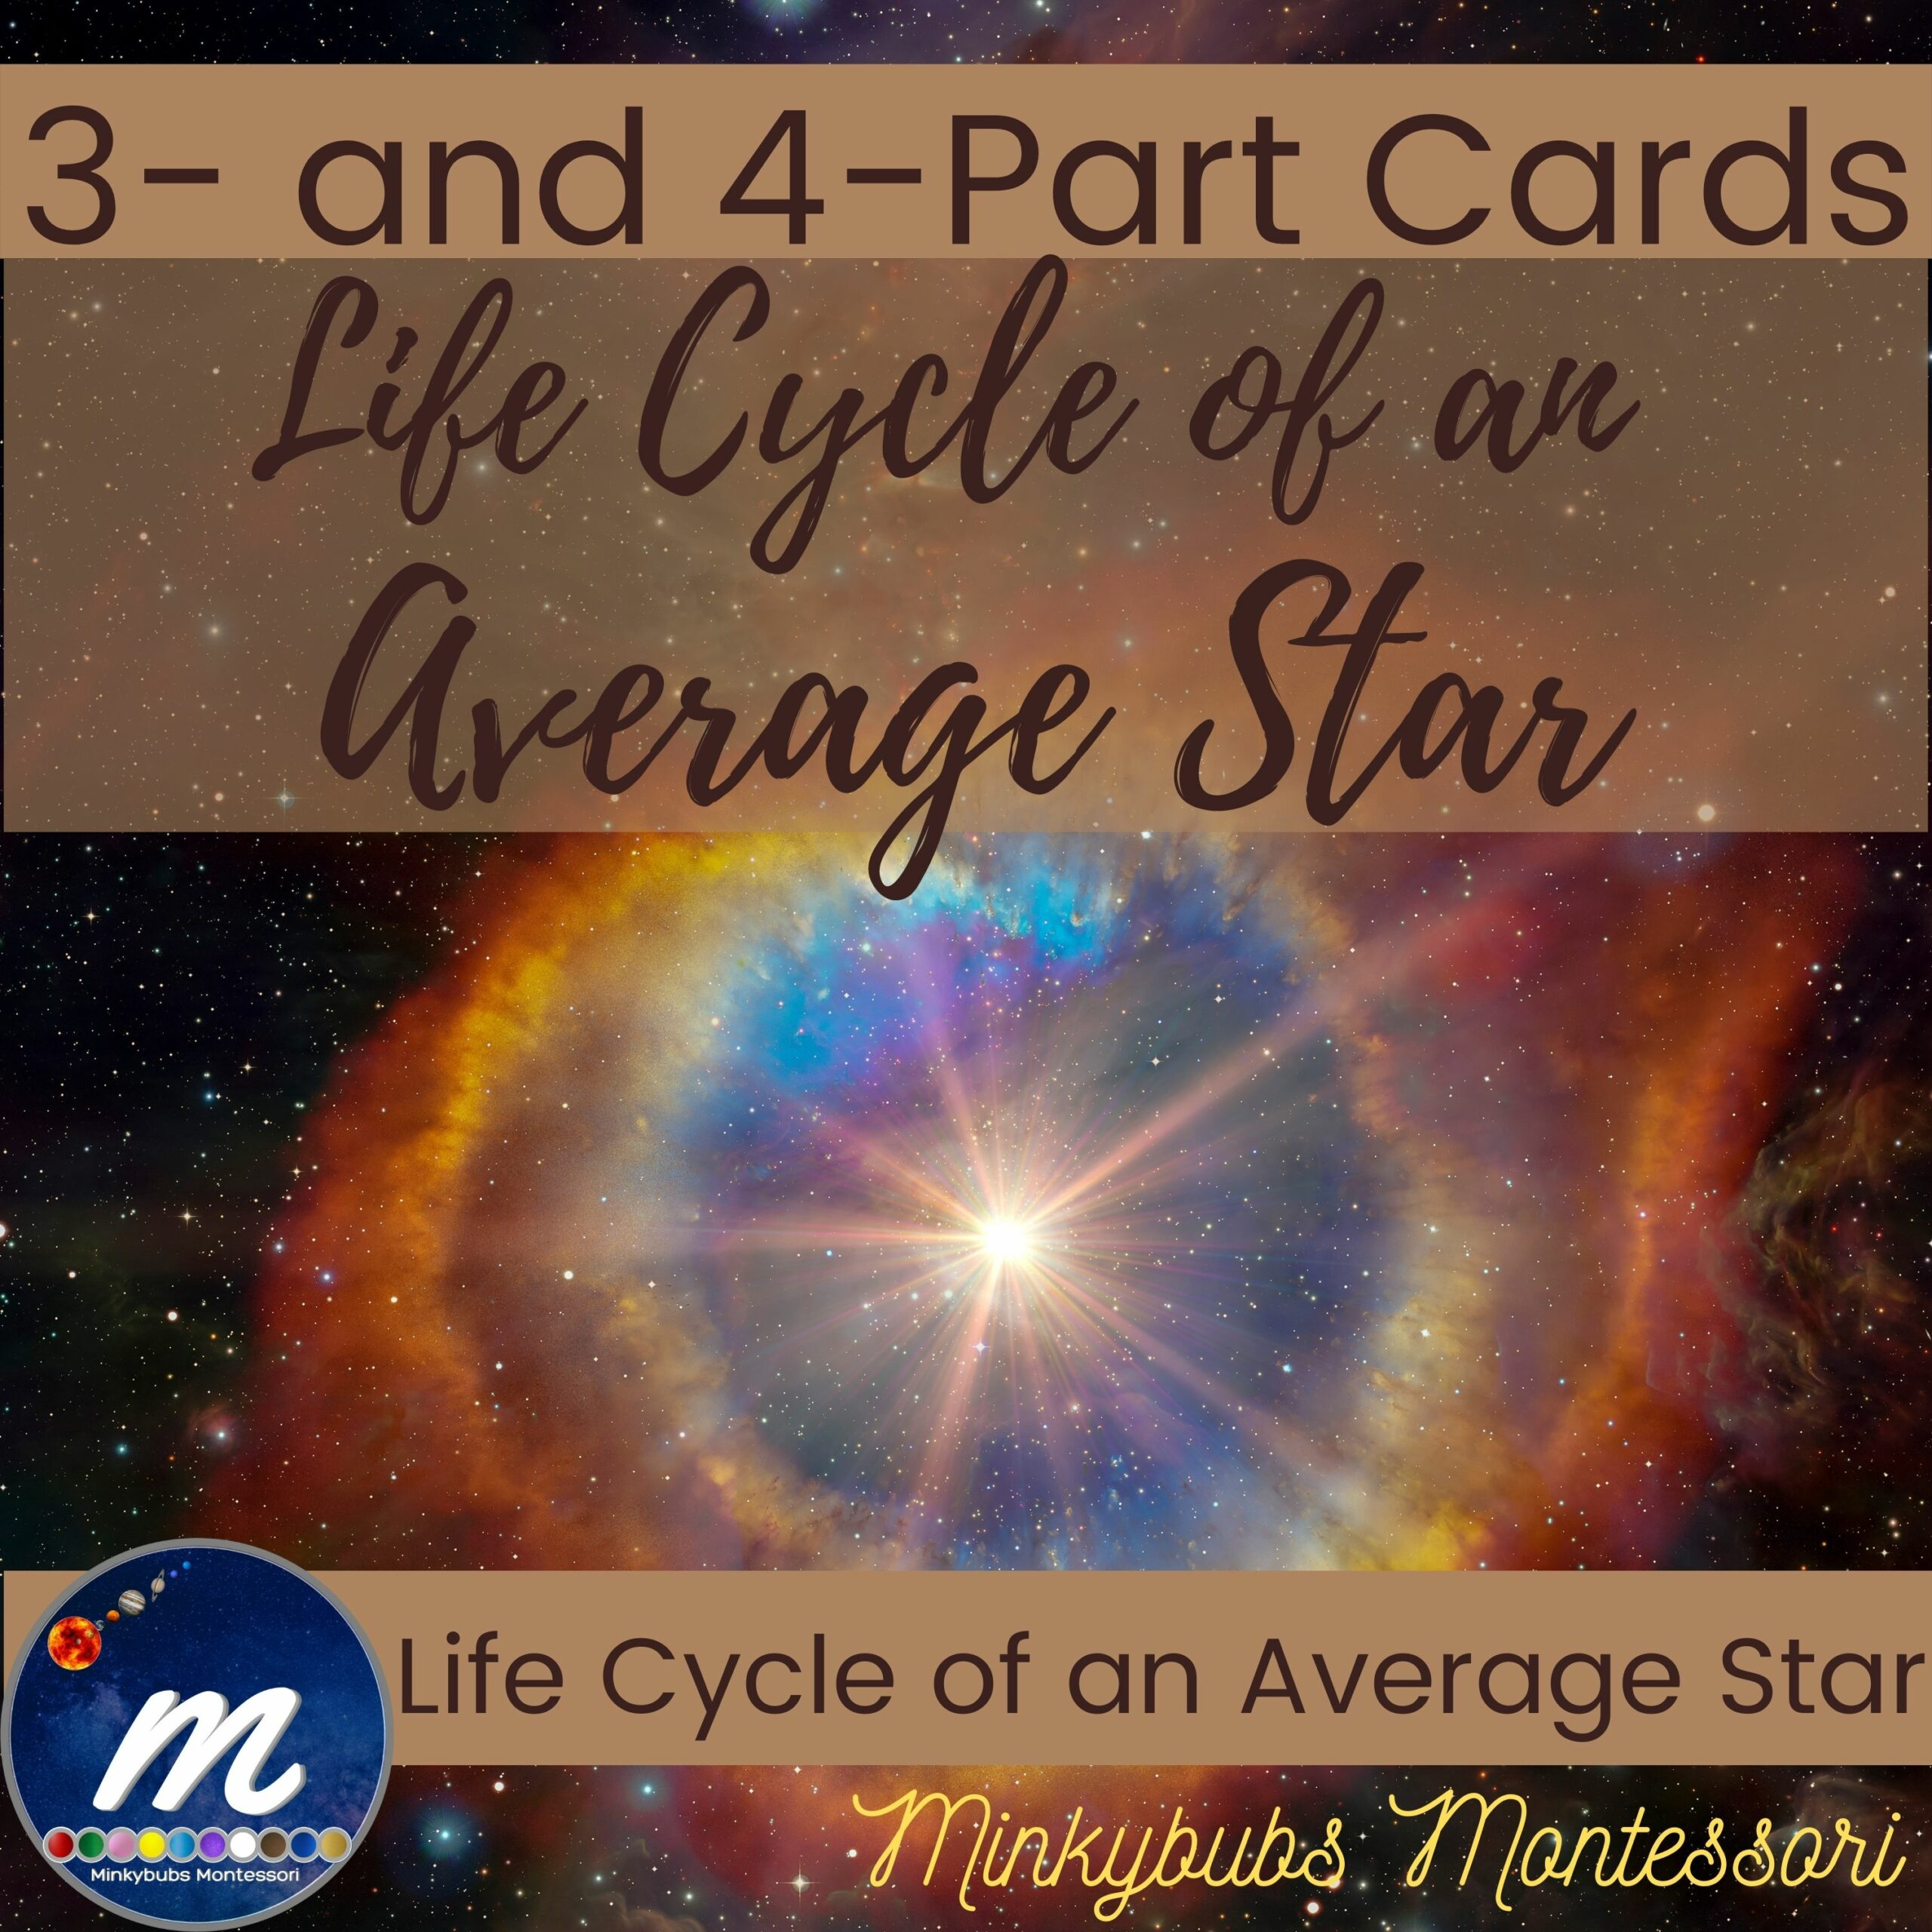 Life Cycle of an Average Star 3 and 4 part cards